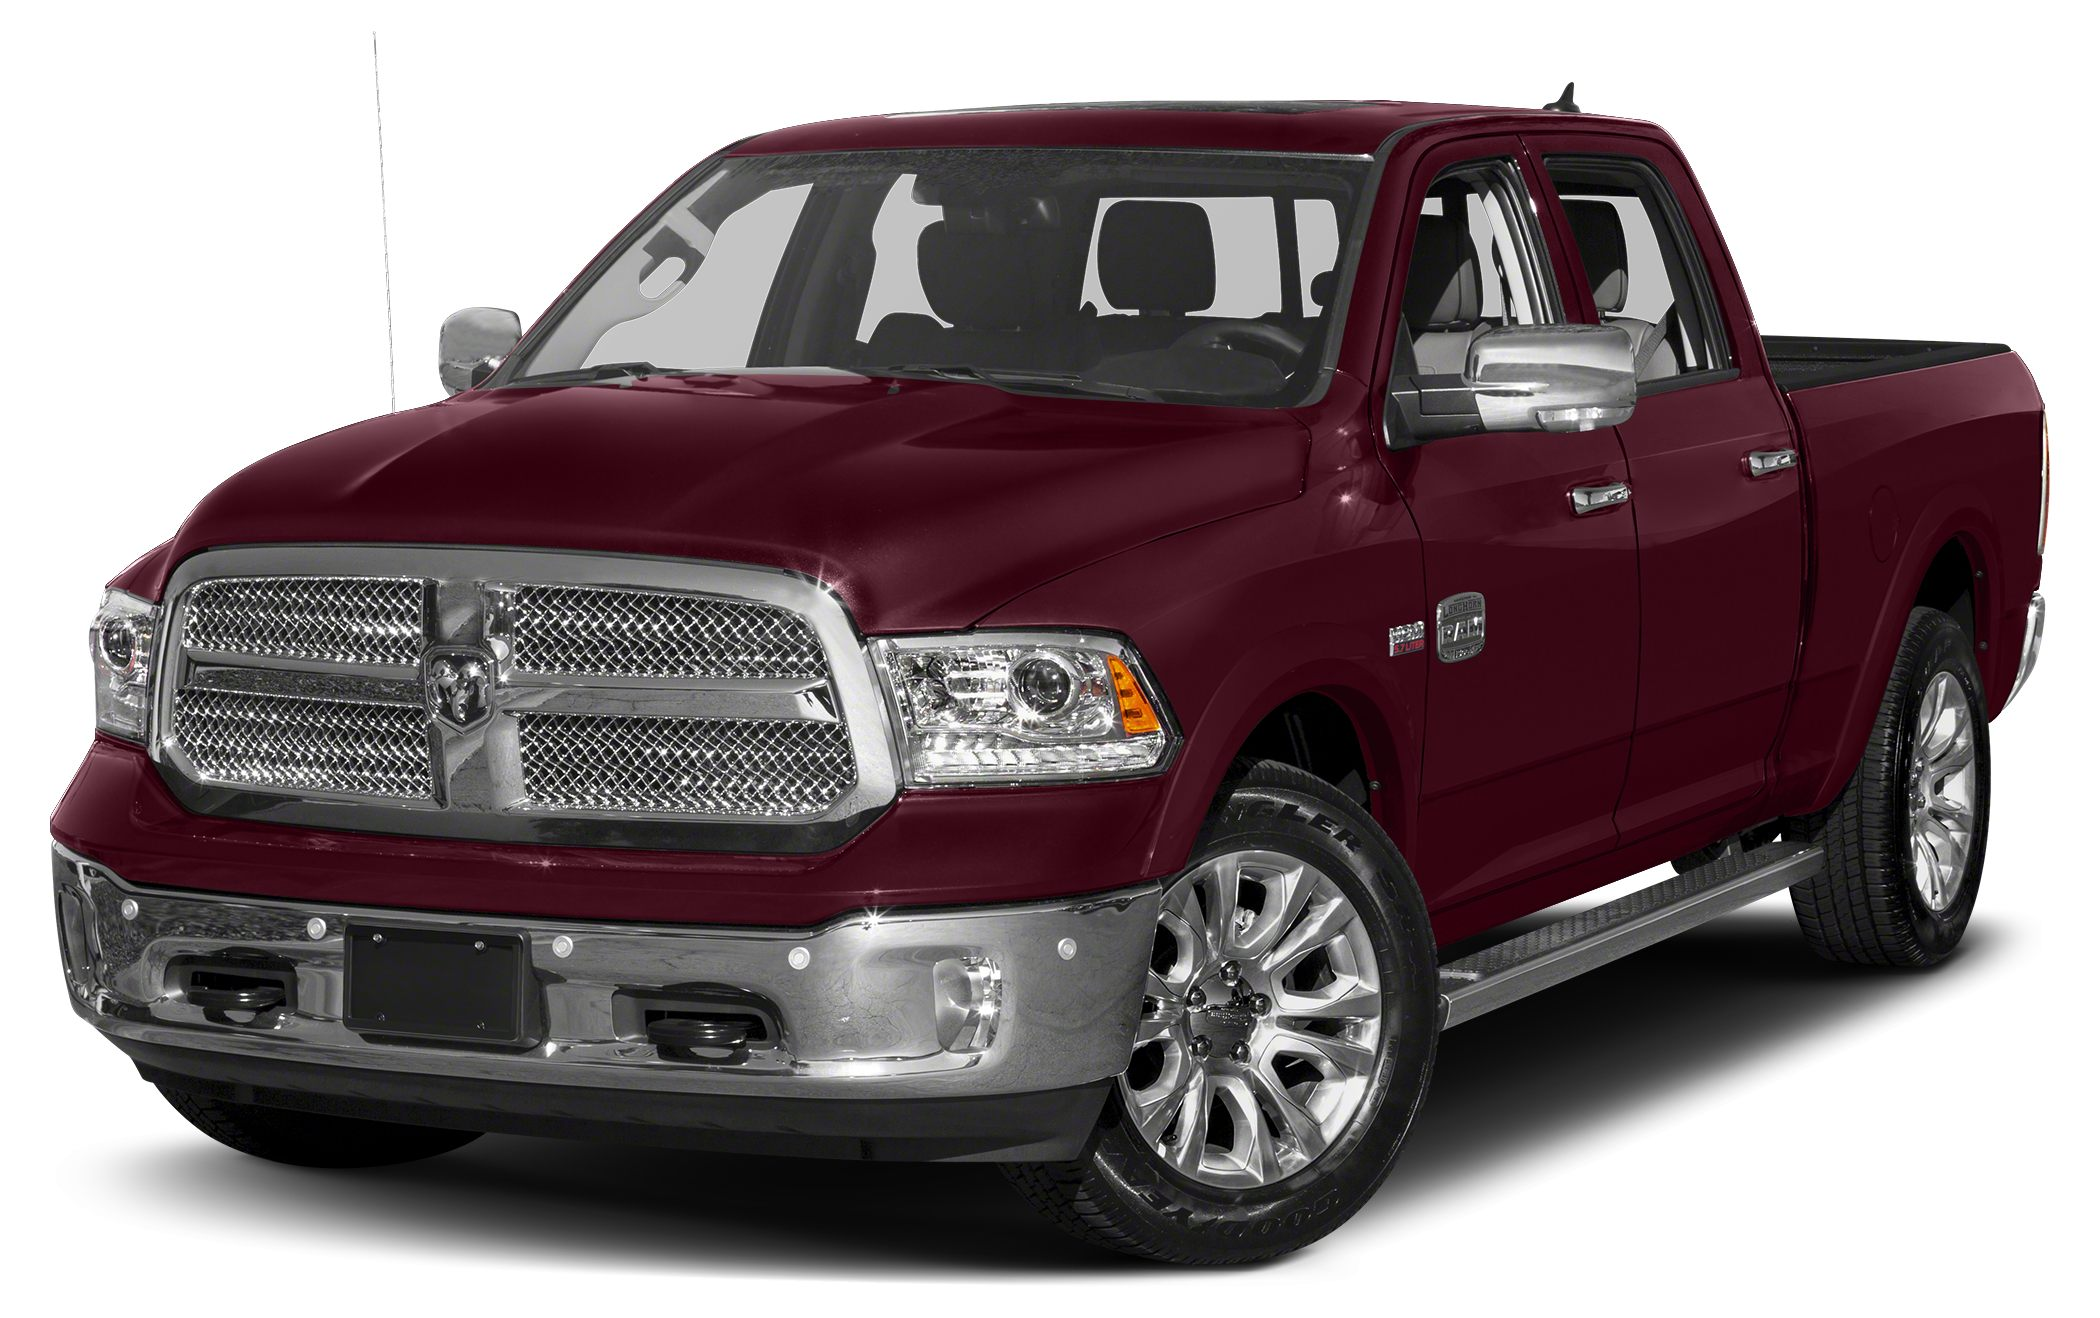 RAM 1500 Laramie Limited vs Ford F 150 Lariat vs GMC Sierra 1500 SLE